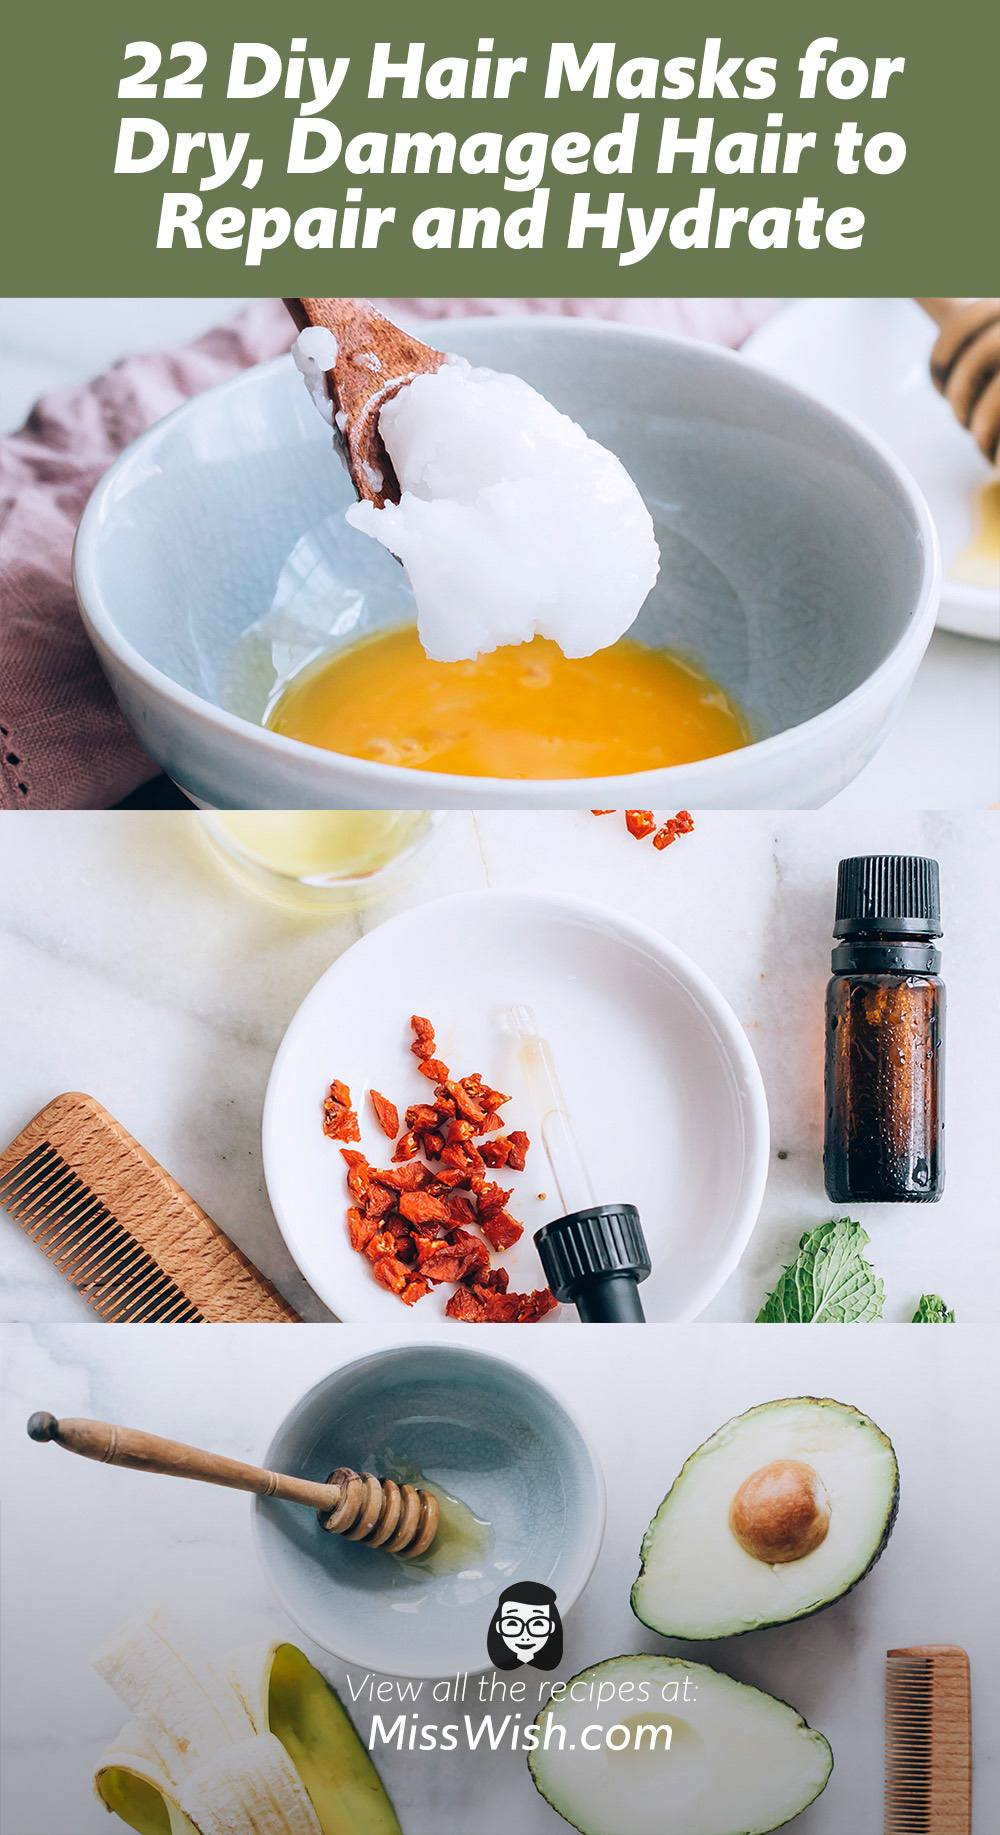 22 Diy Hair Masks for Dry, Damaged Hair to Repair and Hydrate